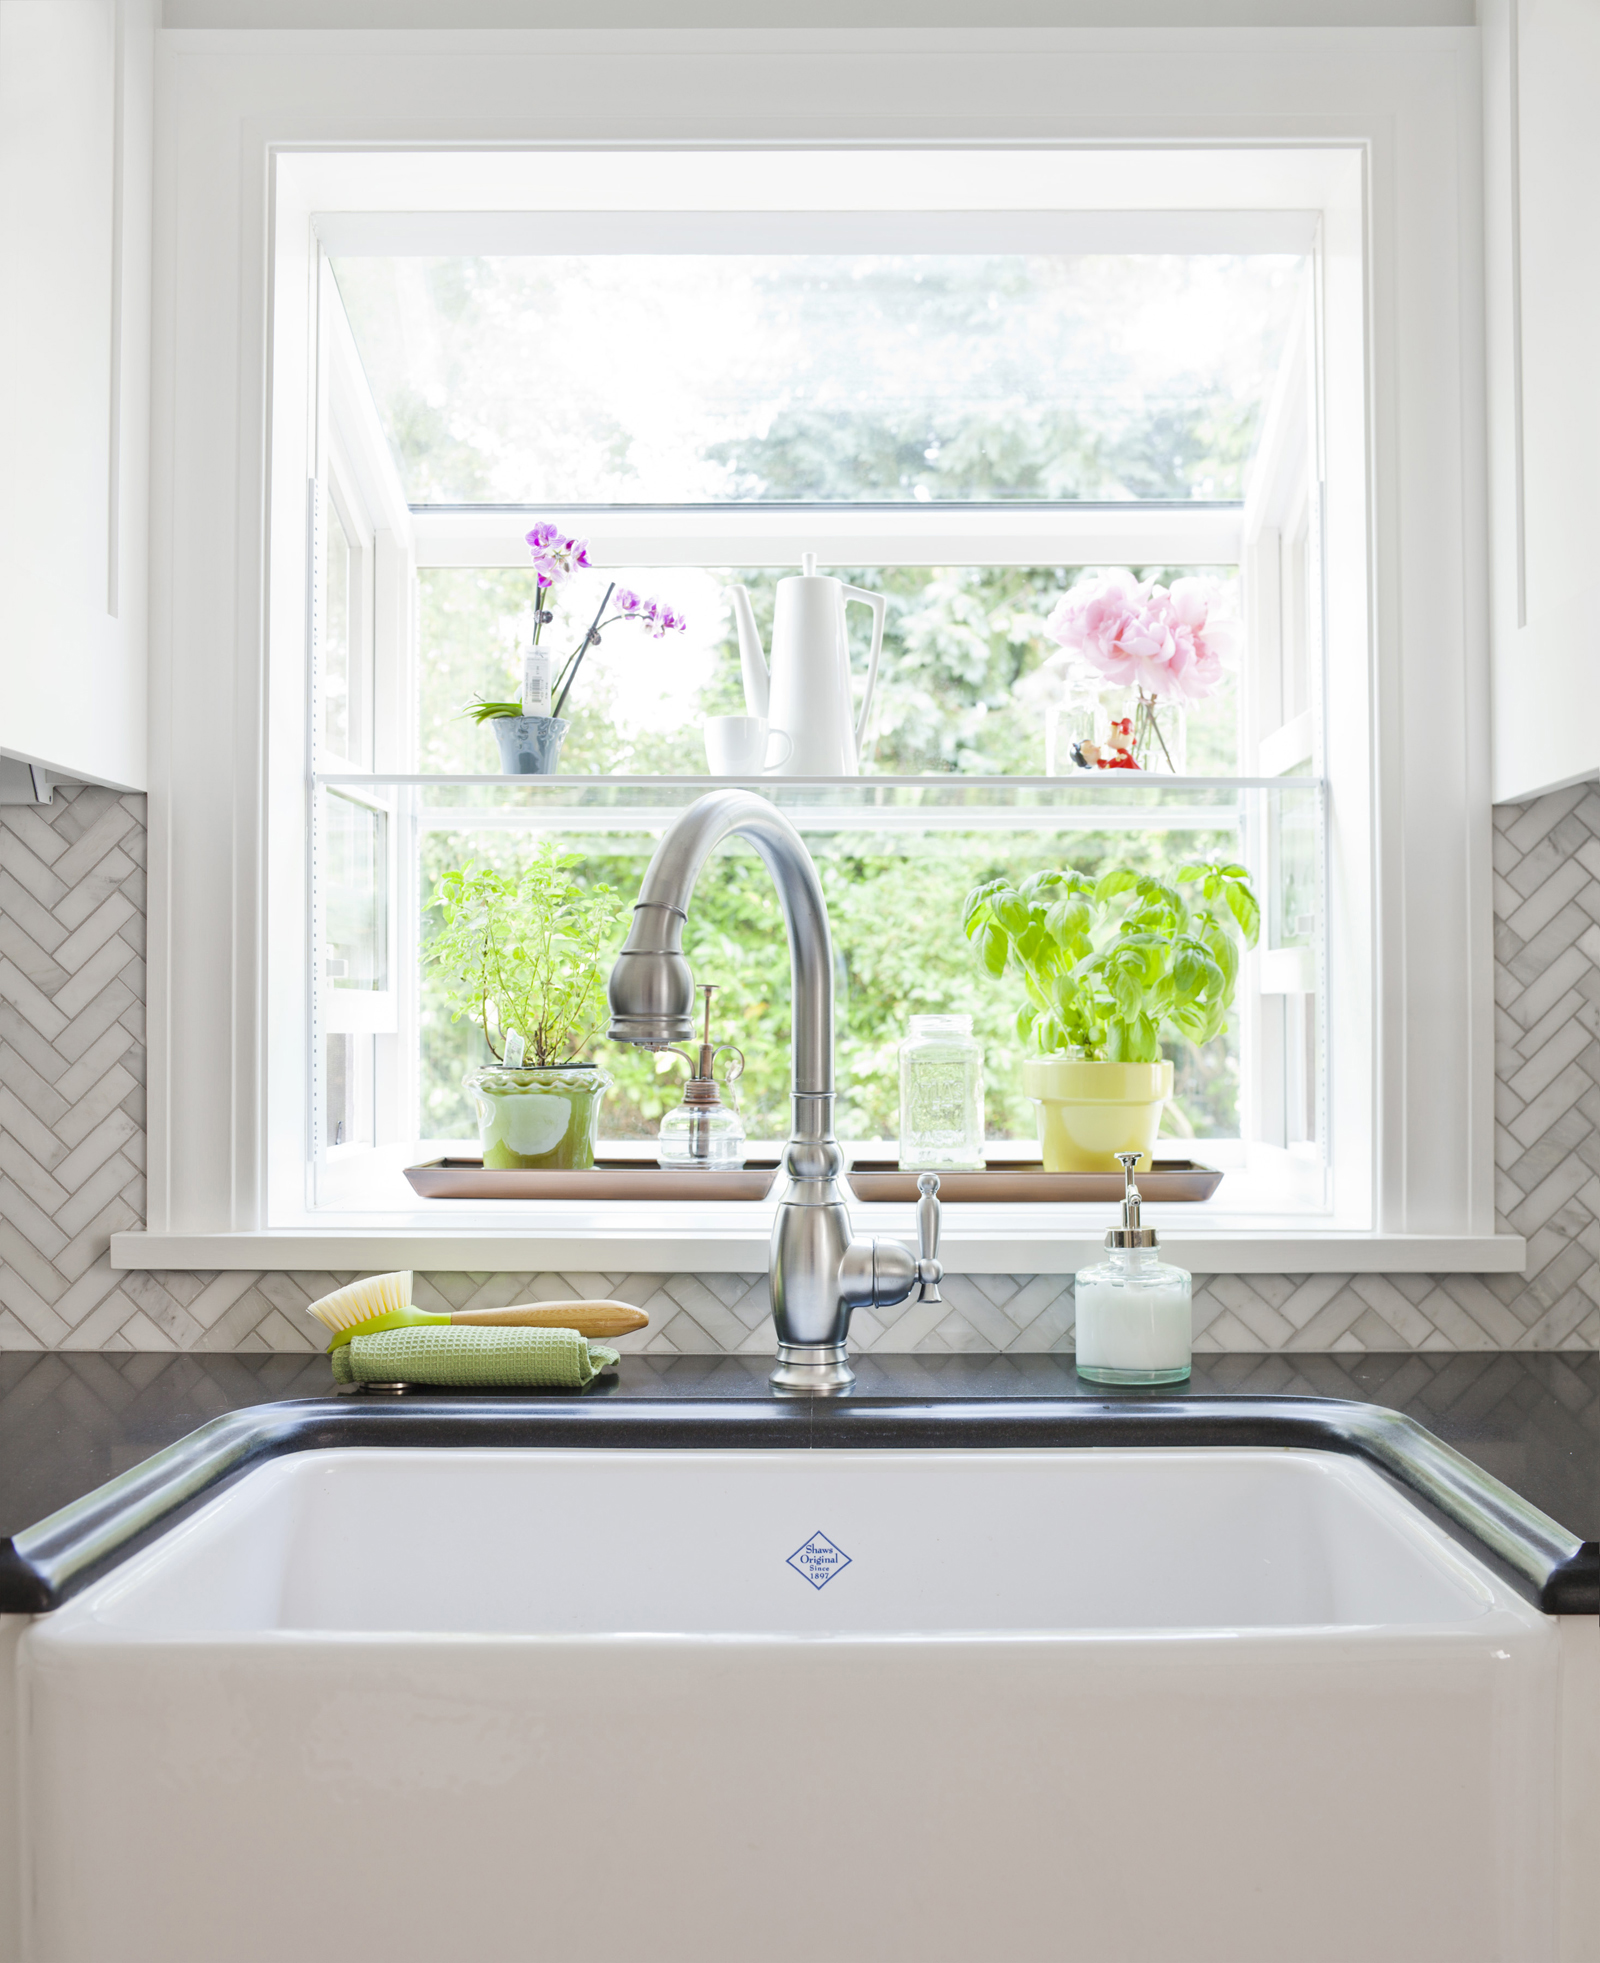 Shaws Original Lancaster Single Bowl Apron Front Fireclay Kitchen Sink - photo ©Cindy Apple